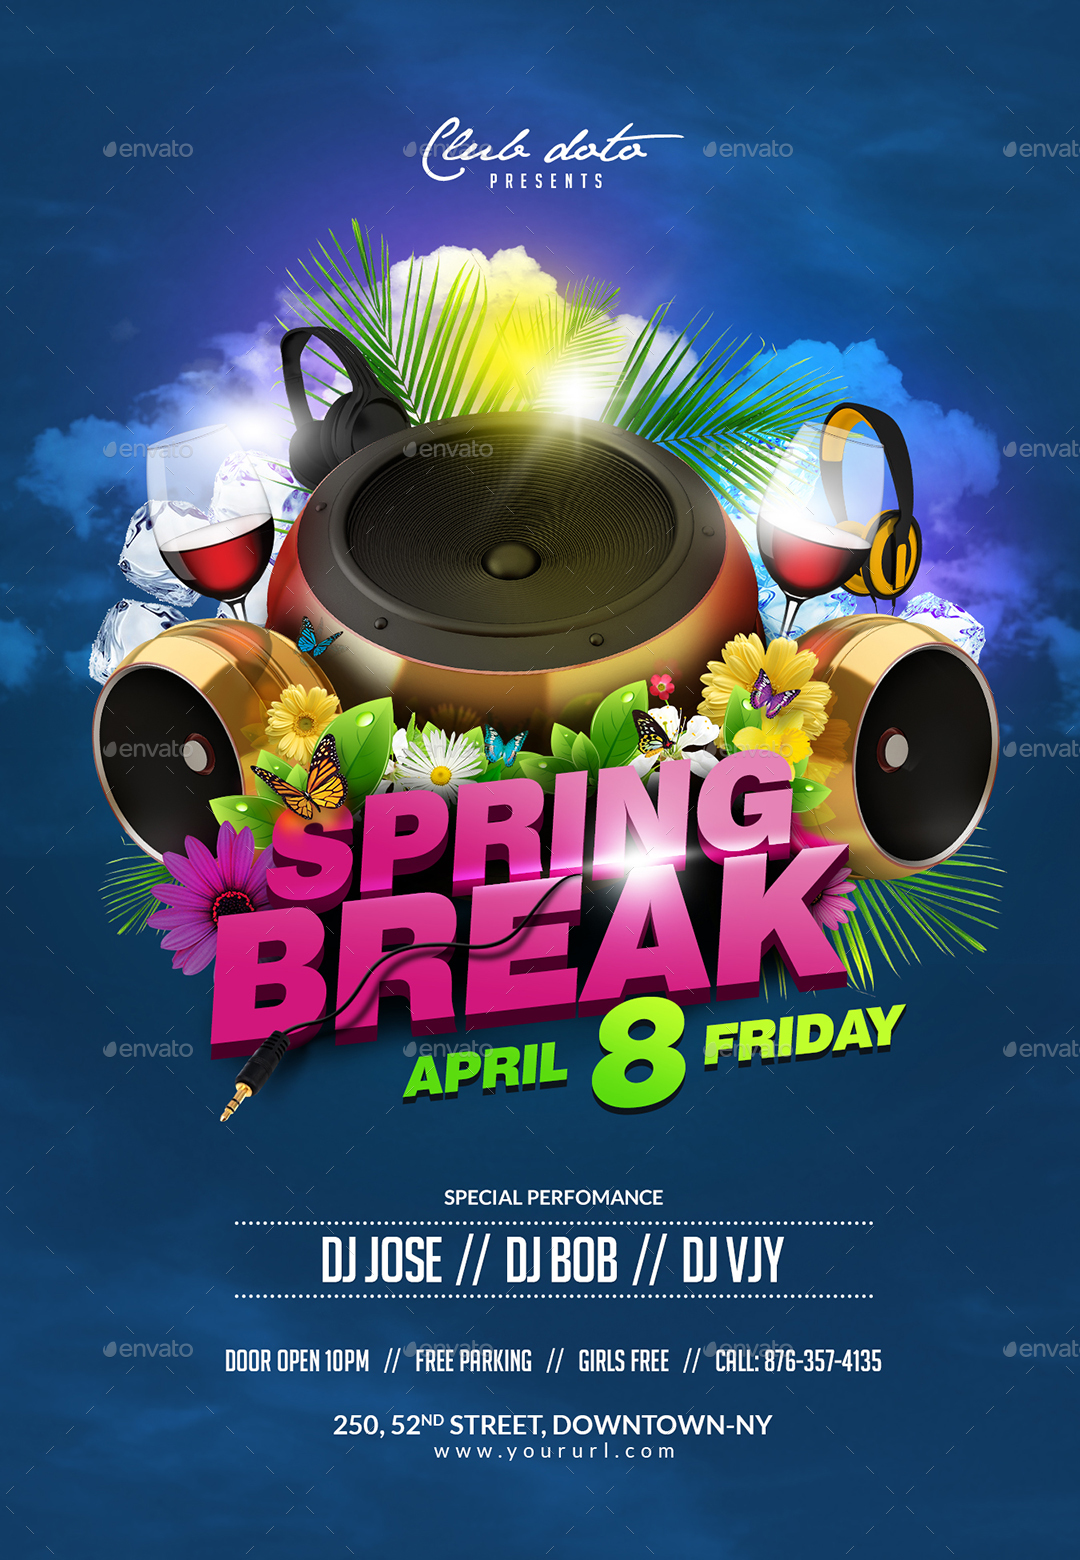 Spring Break Flyer Template by doto | GraphicRiver